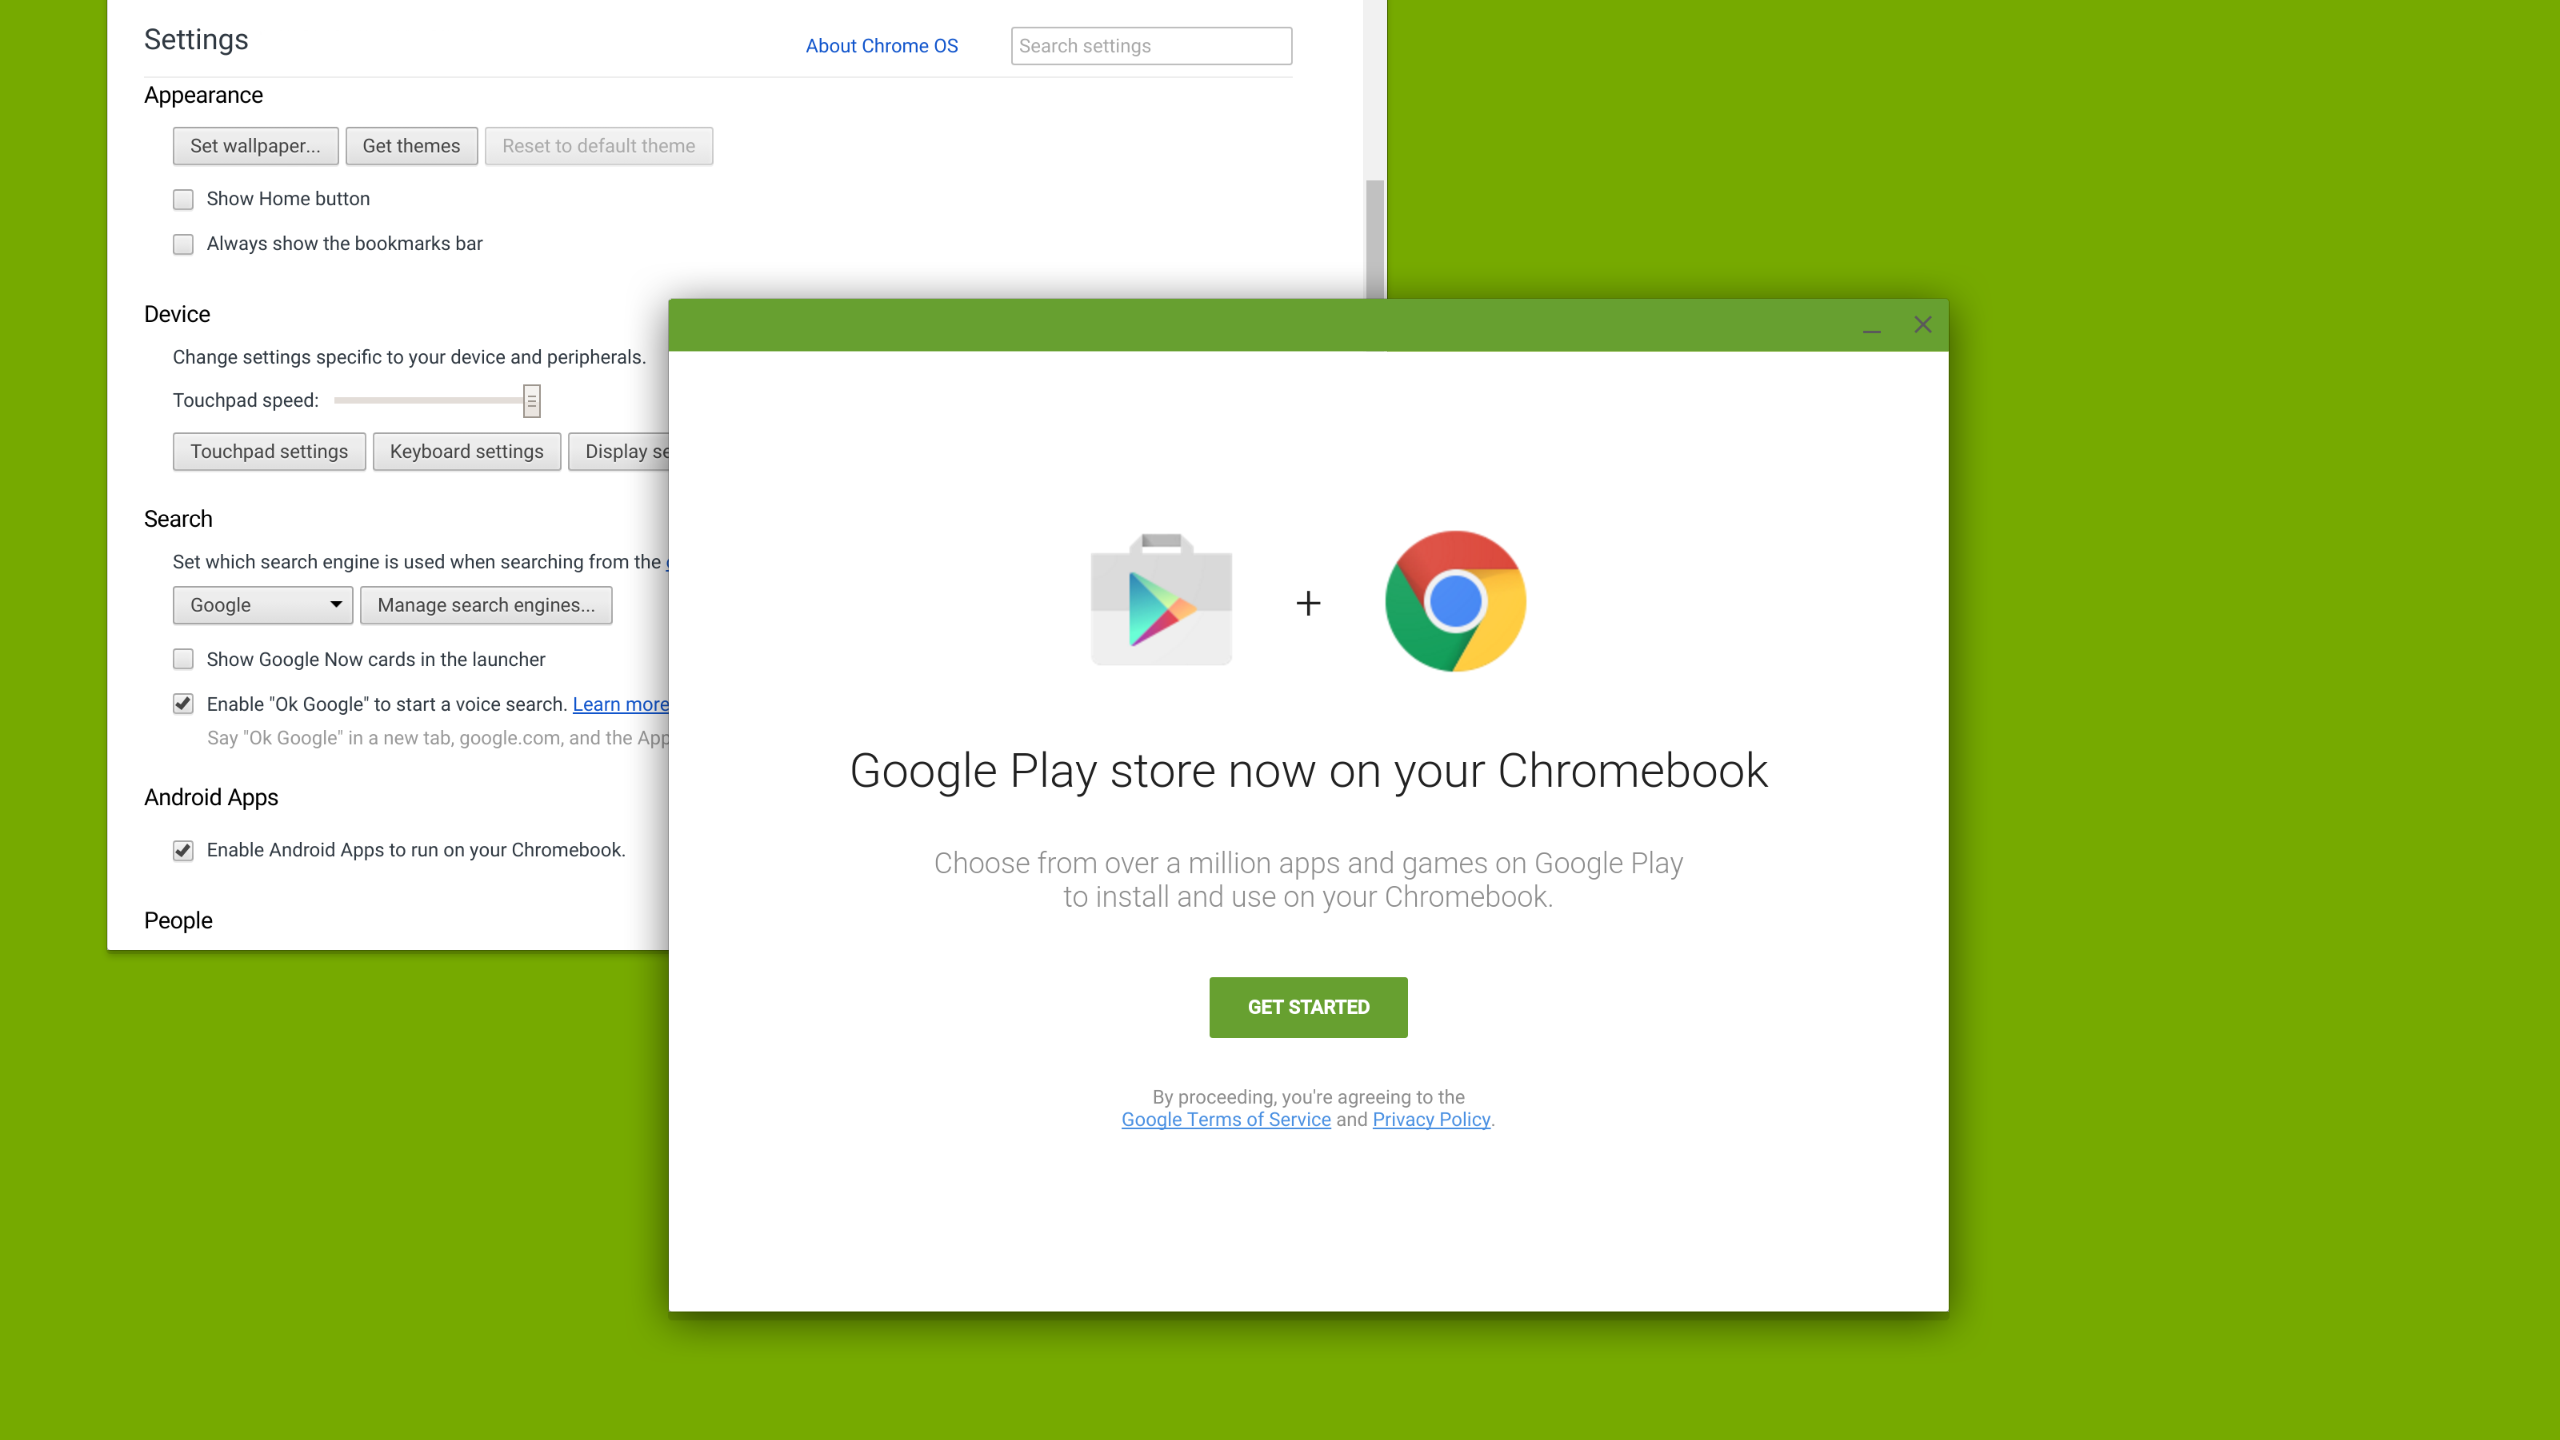 Google Play on Chromebook. Amazing.